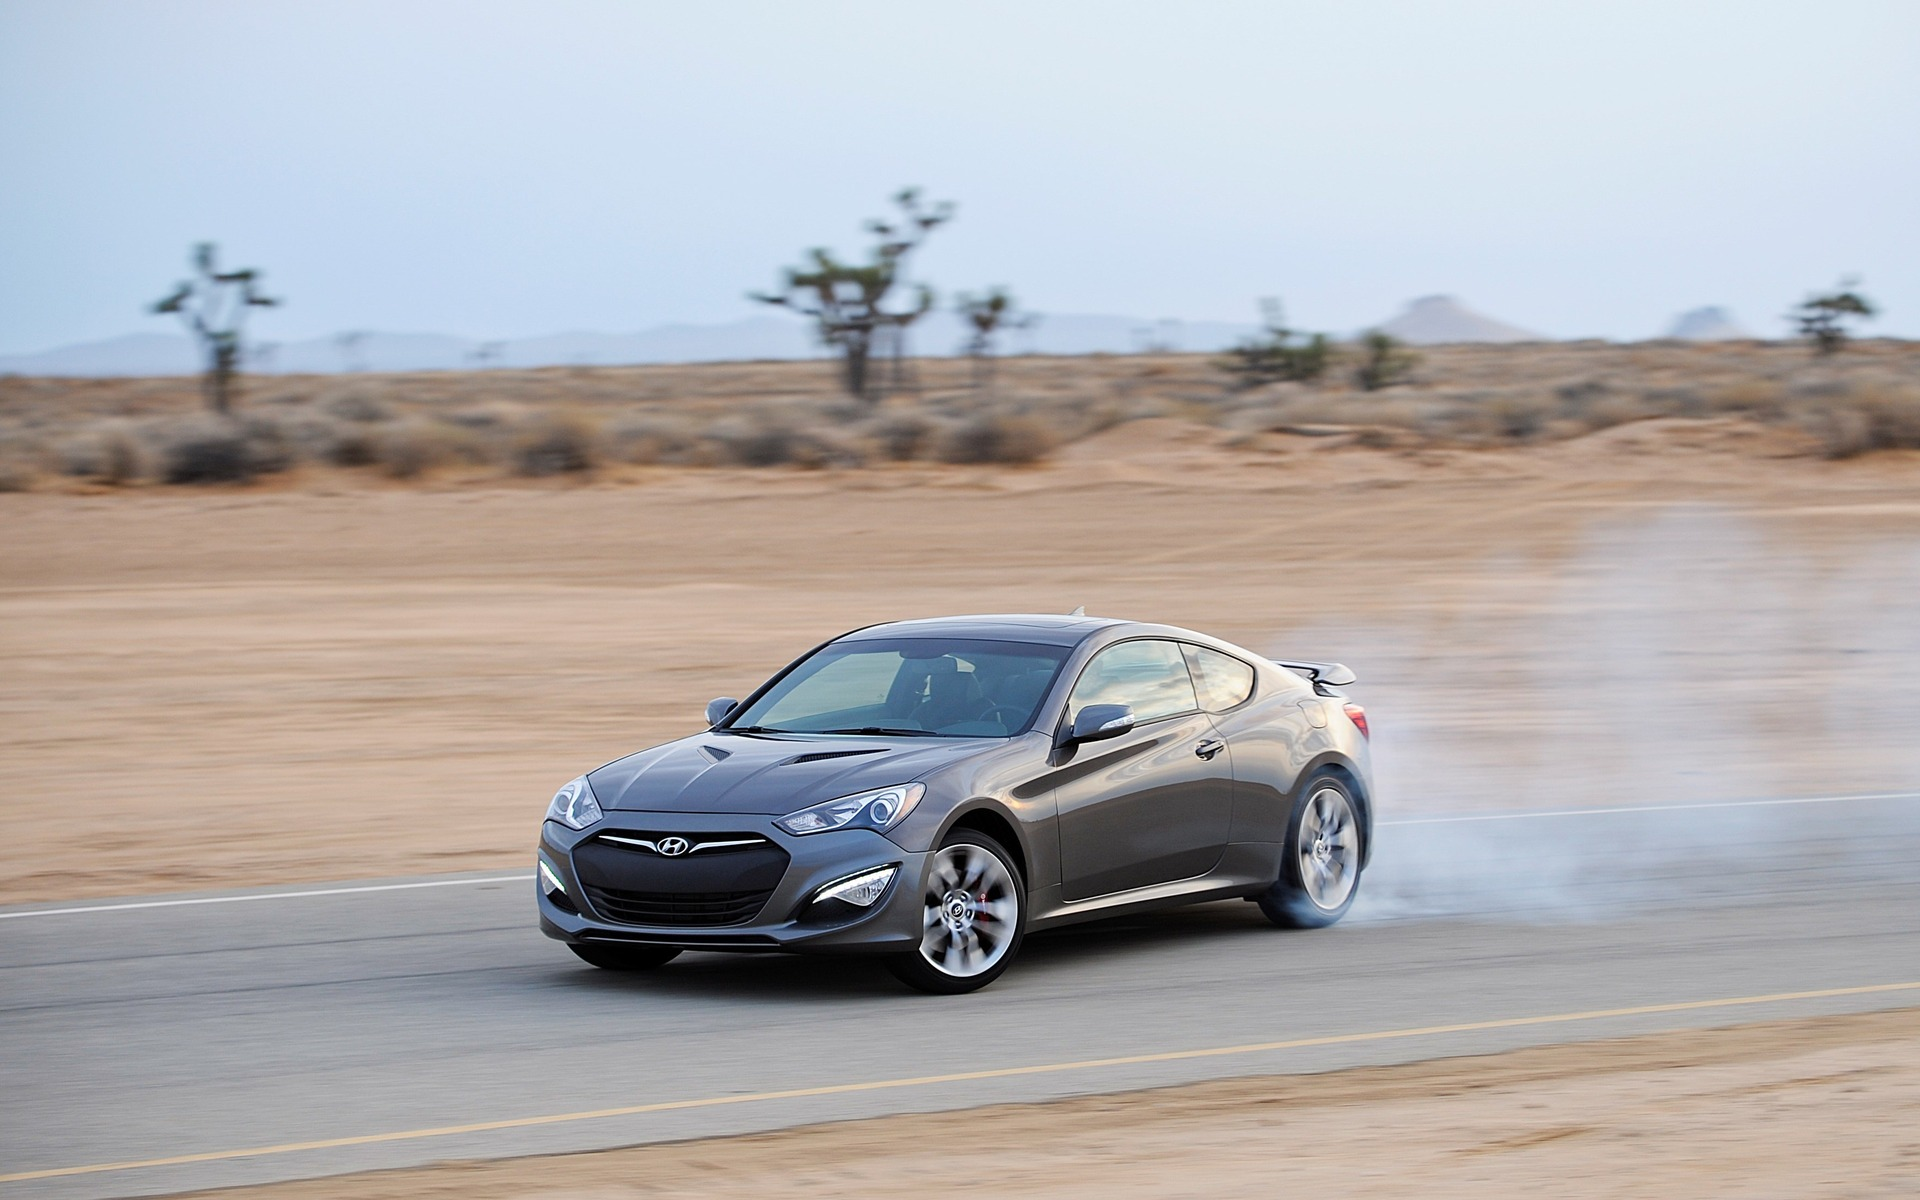 One of the fastest cars under 30K is the Hyundai Genesis 3.8 R-Spec.